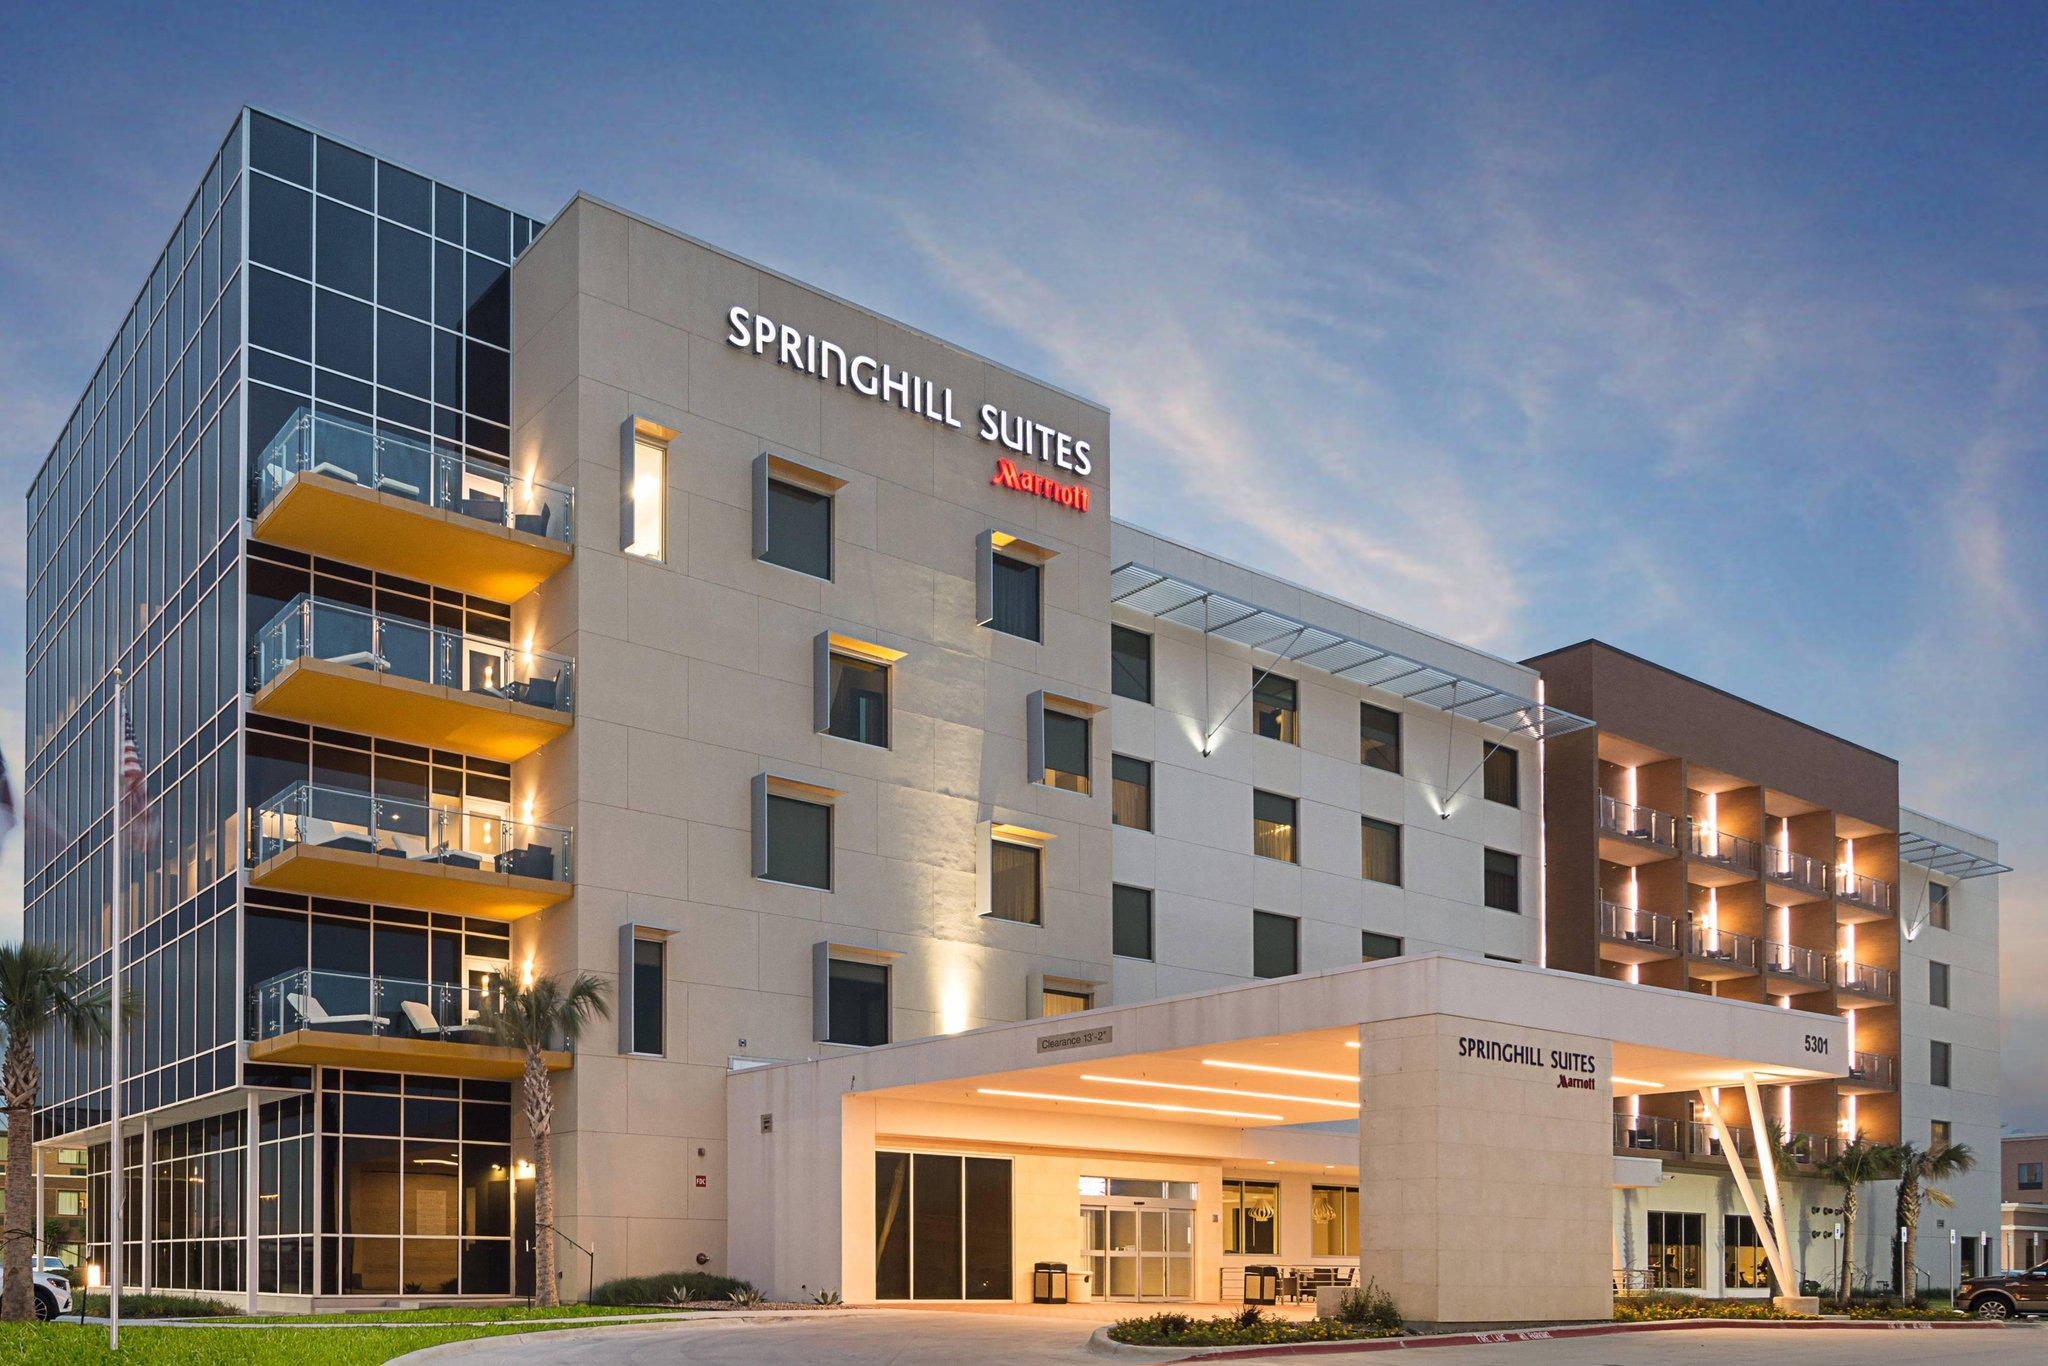 SpringHill Suites by Marriott Fort Worth Fossil Creek